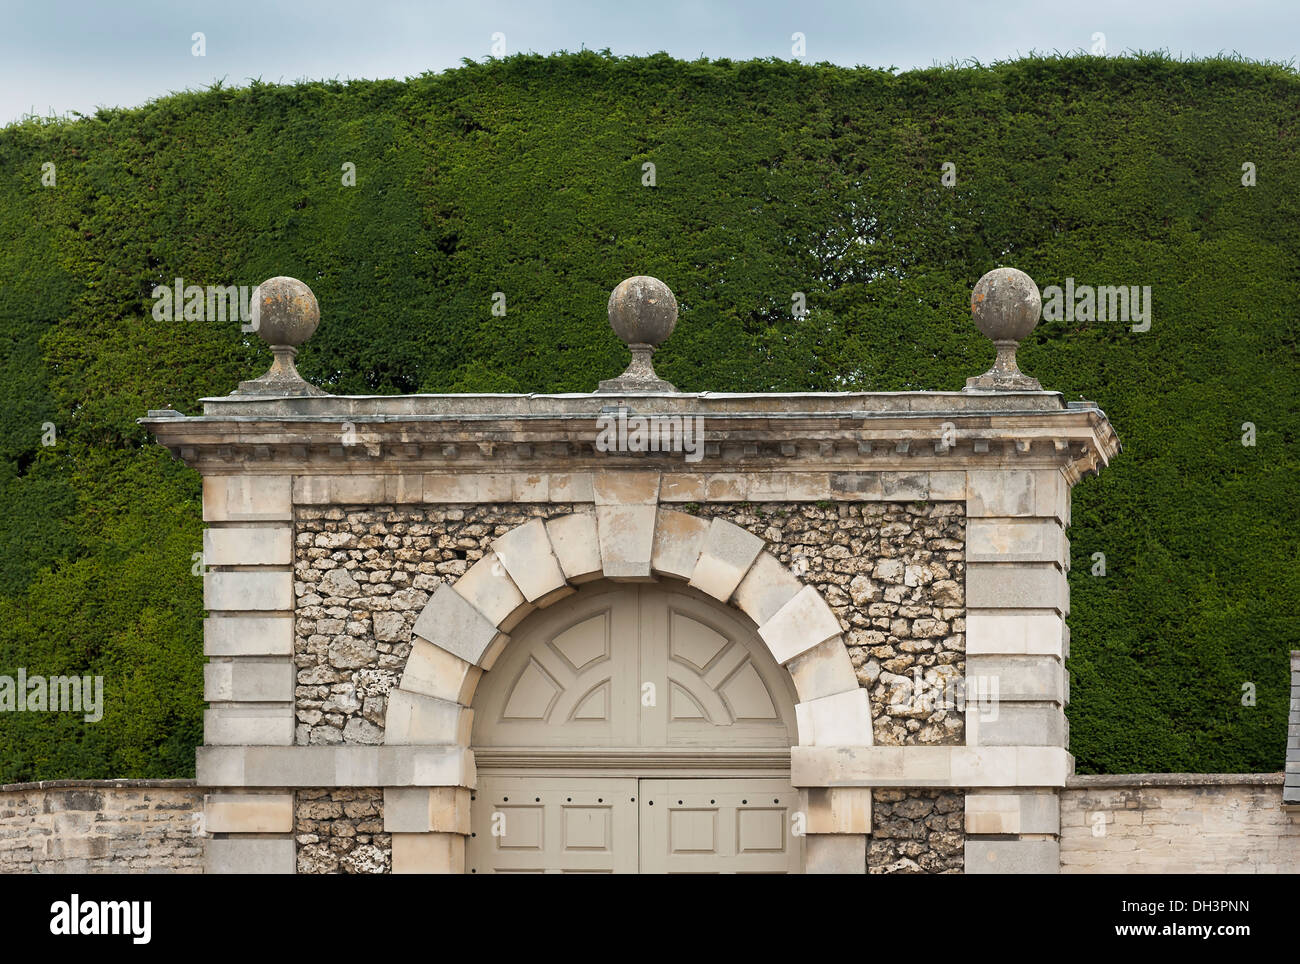 Use of tall mature conifer hedge to add privacy to a property in Cirencester UK - Stock Image